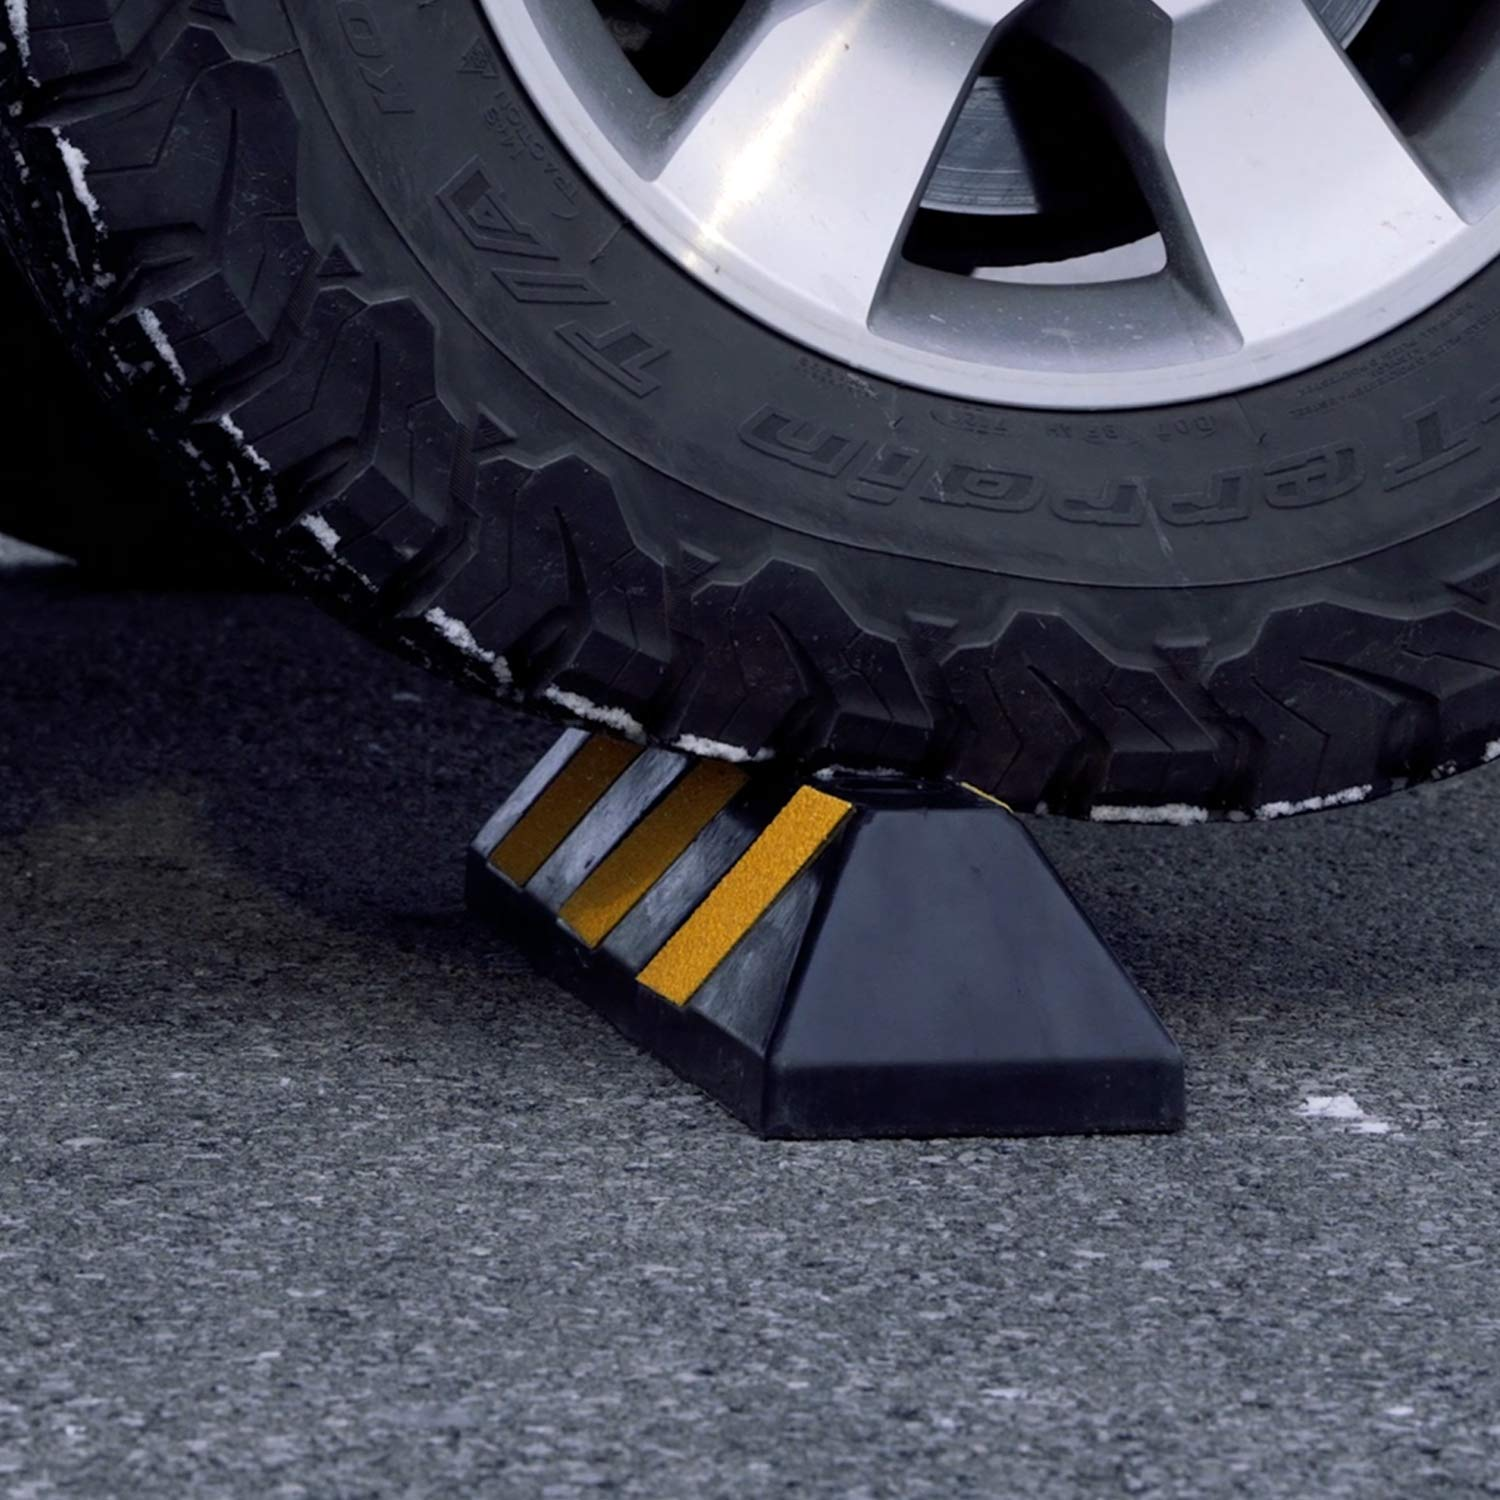 Fullstop Vehicle Parking Block, Black Commercial Heavy Duty Rubber Curb with 4 ScatterGlass Reflective Yellow Targets for Car, Truck, RV and Trailer Stop Aid, 22 Inches Long x 4 Inches High by Fullstop (Image #4)